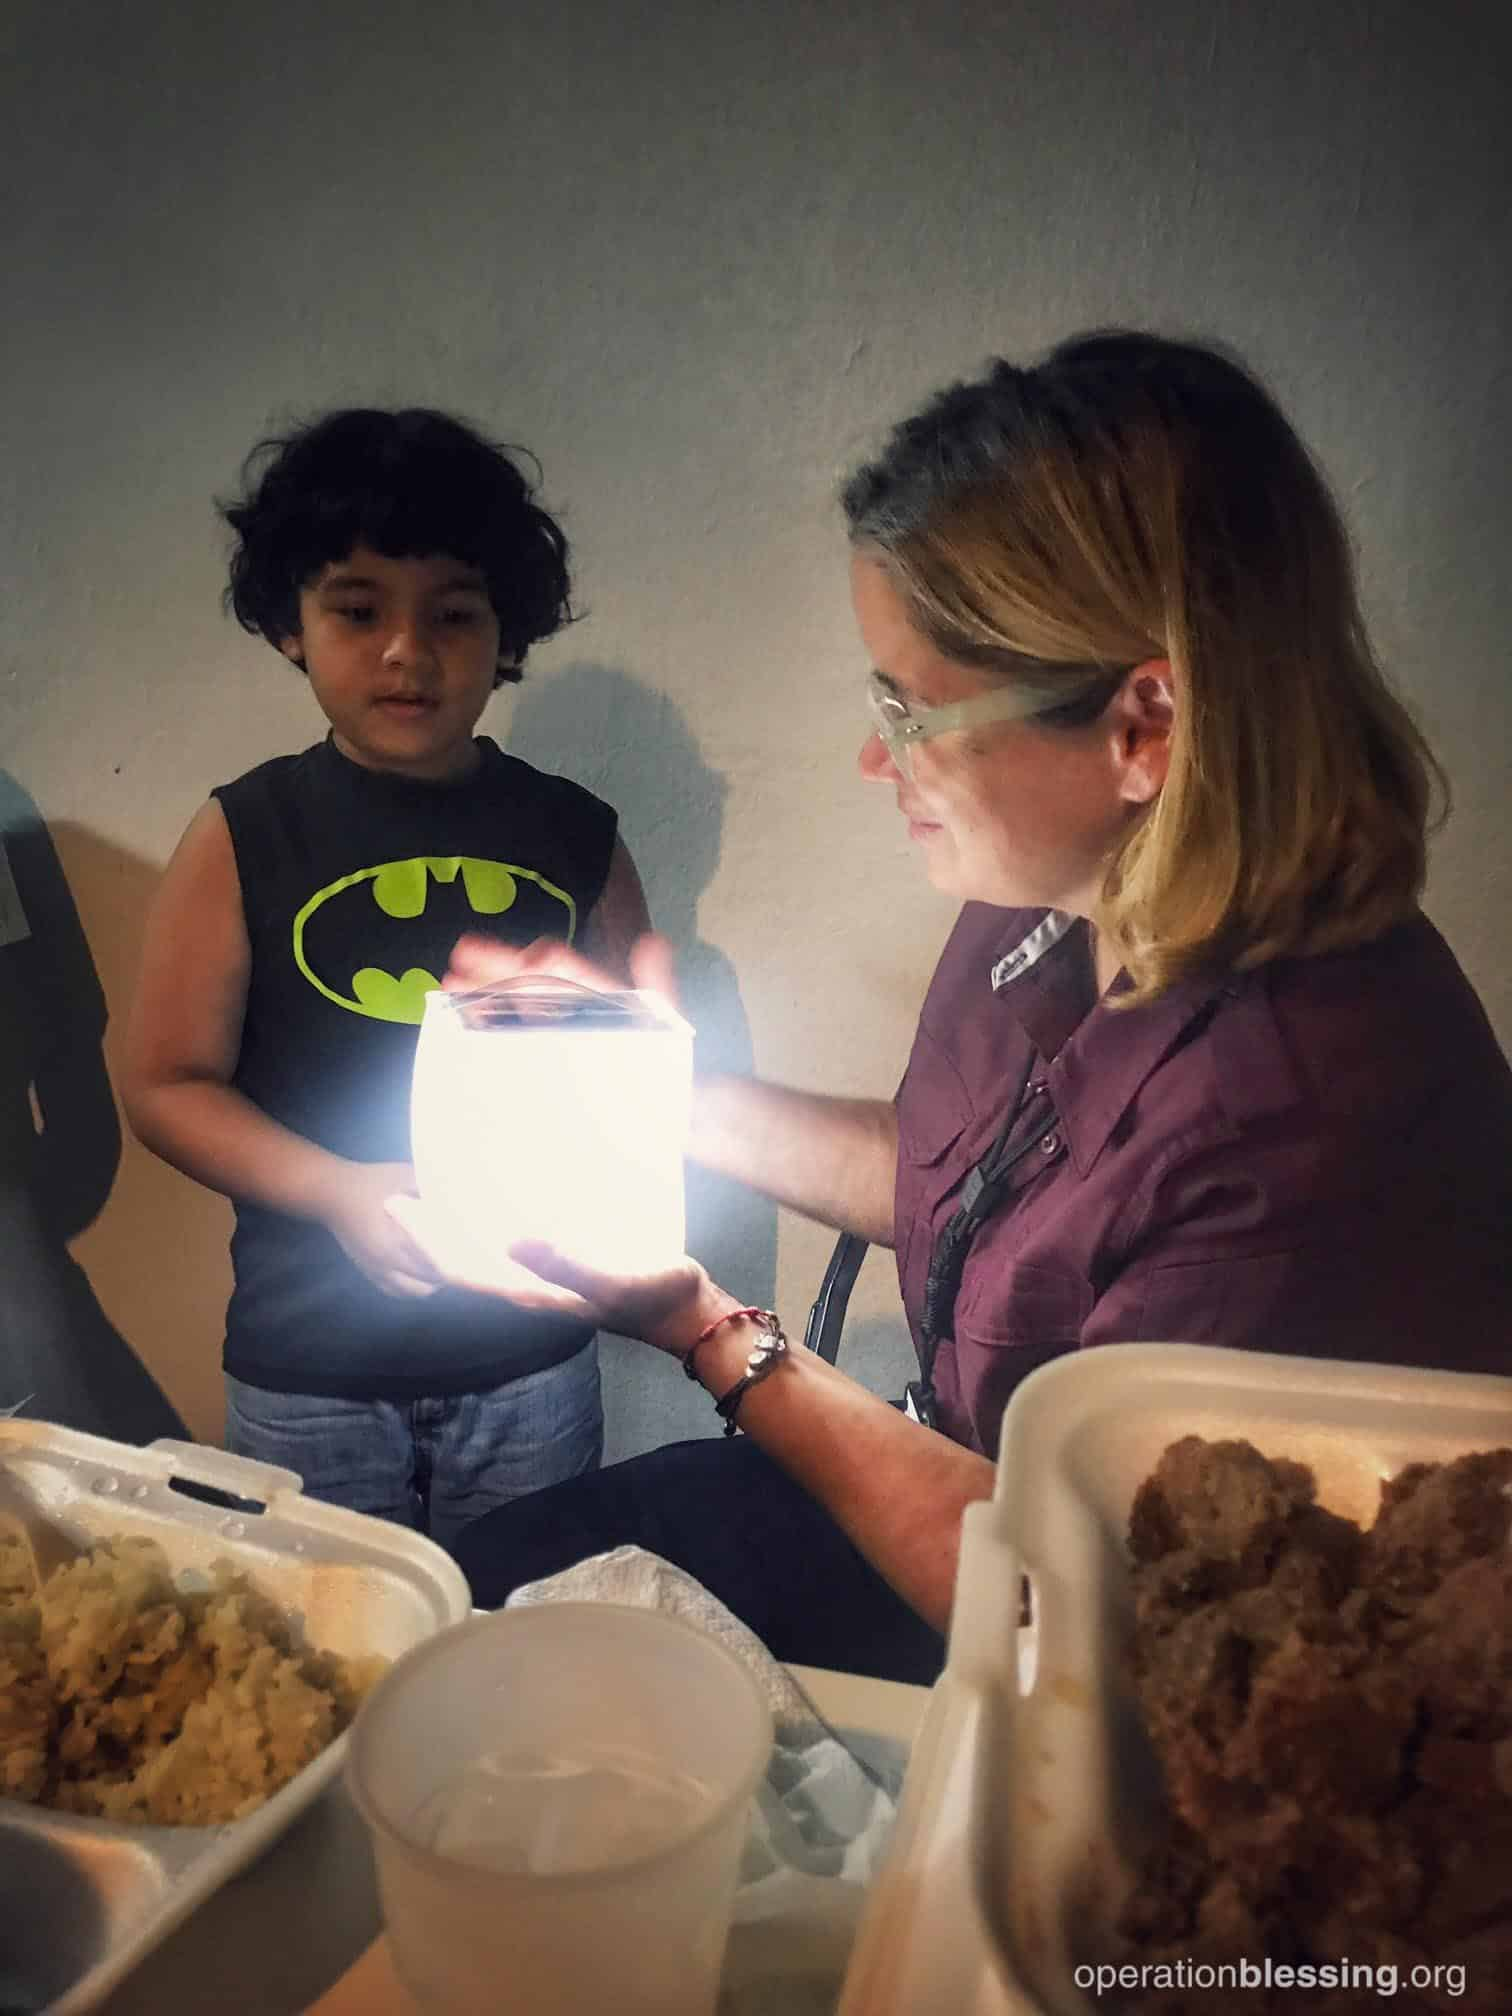 The mayor of San Juan helps distribute Operation Blessing solar lights to children in need in Puerto Rico.